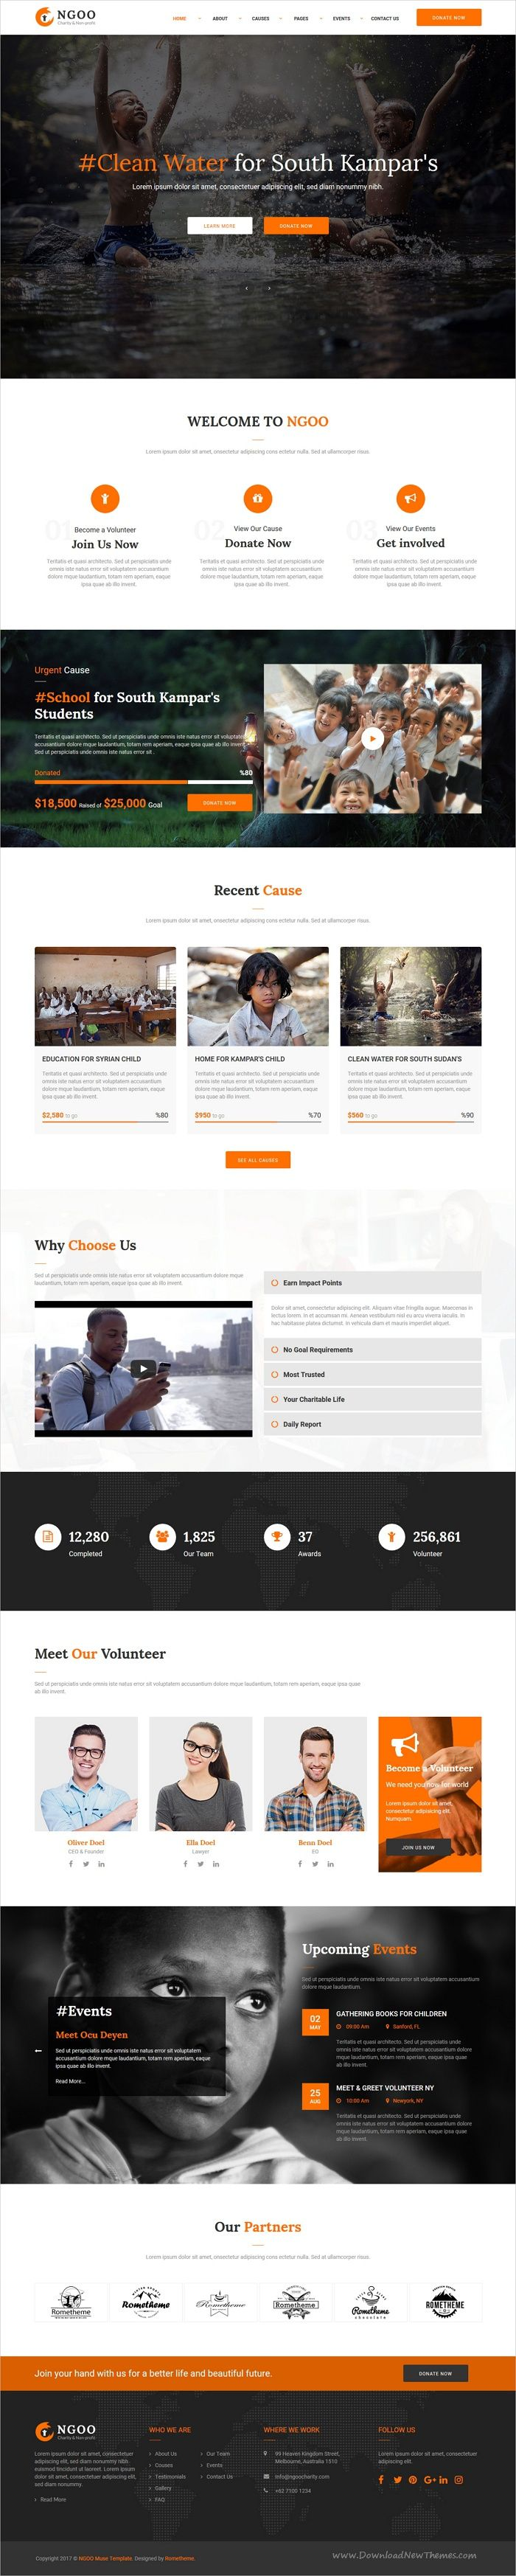 NGOO is a clean, modern, and fully 3in1 responsive #Muse Template for charity, #nonprofit, #fundraising, donation, volunteer service websites download now➩ https://themeforest.net/item/ngoo-charity-nonprofit-and-fundraising-muse-template/19381116?ref=Datasata